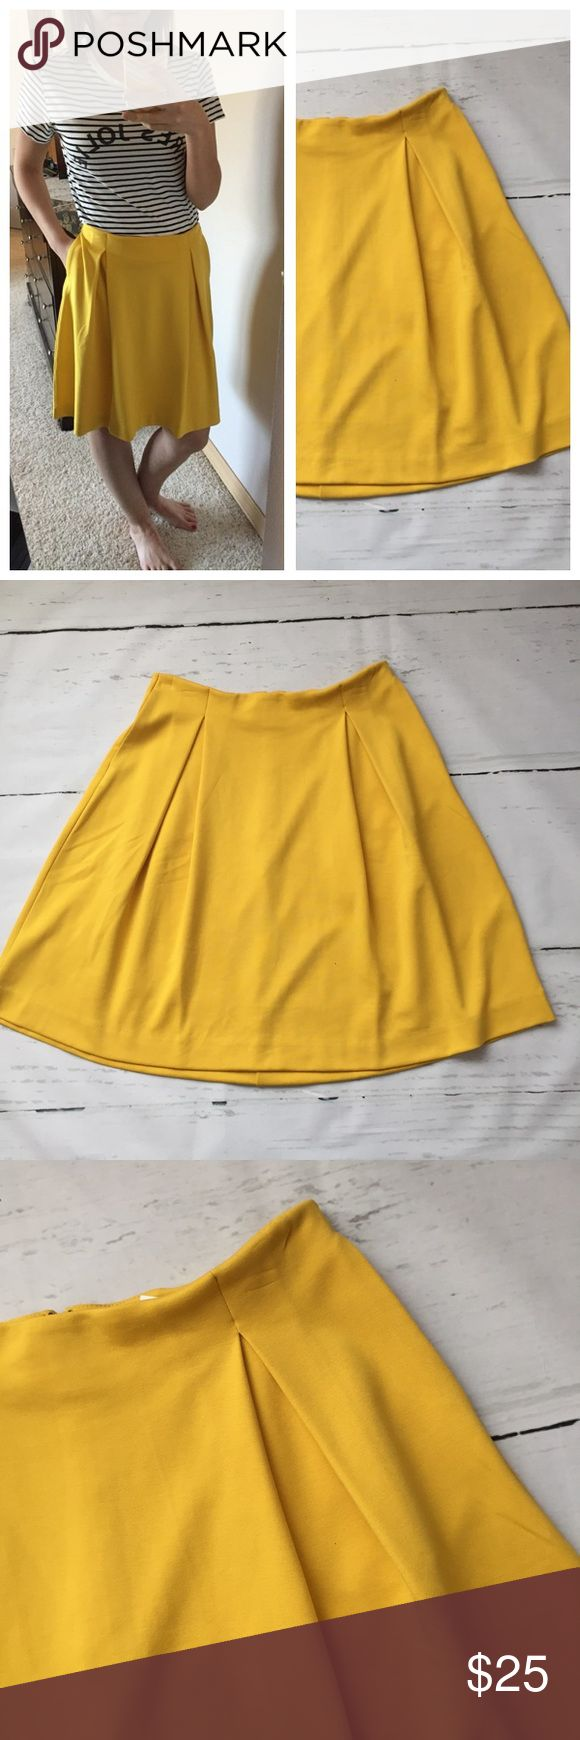 """Banana Republic Yellow Pleated Skirt Banana Republic Bright Yellow Pleated A Line Skirt. Super cute pockets! I'm usually a 4 or 6 and I wore this high waisted. Crease or wrinkle on the side from pant hanger. Shown in las Picture.   Size: 2 Rayon Polyester and Spandex  Measurements: W 13"""" L 20"""" Banana Republic Skirts"""